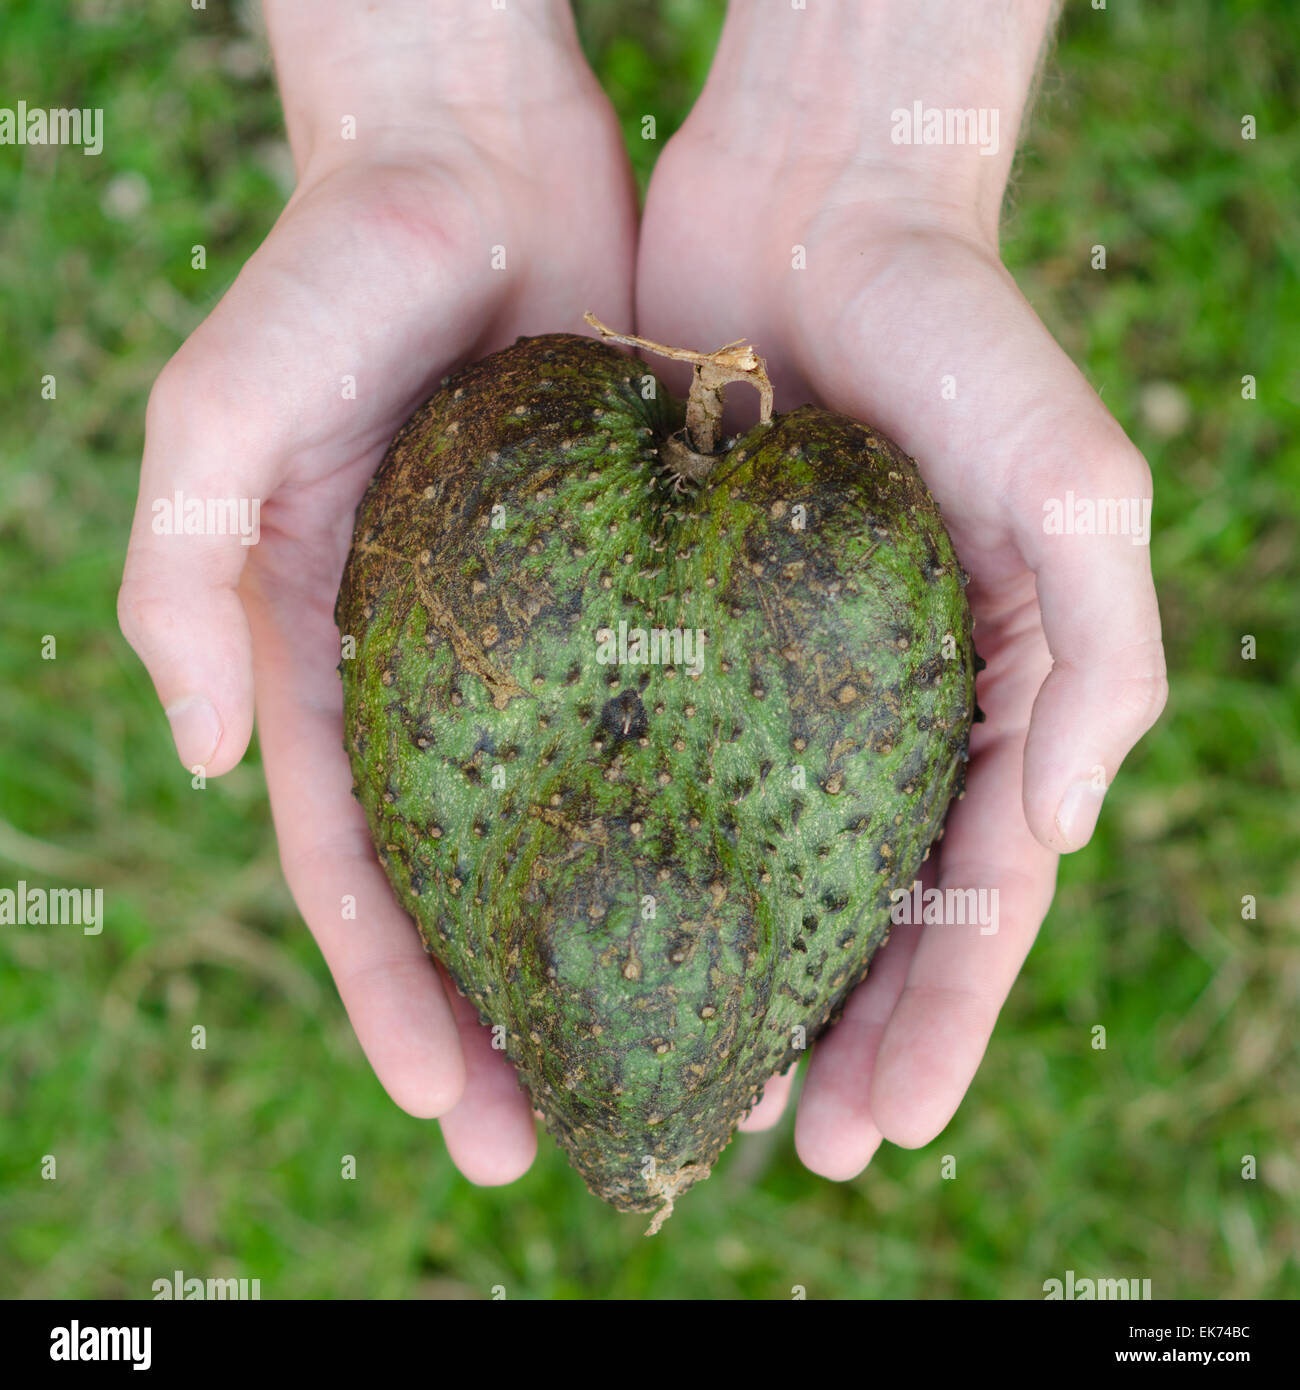 guanabana heart form in mans hands on green grass background square - Stock Image